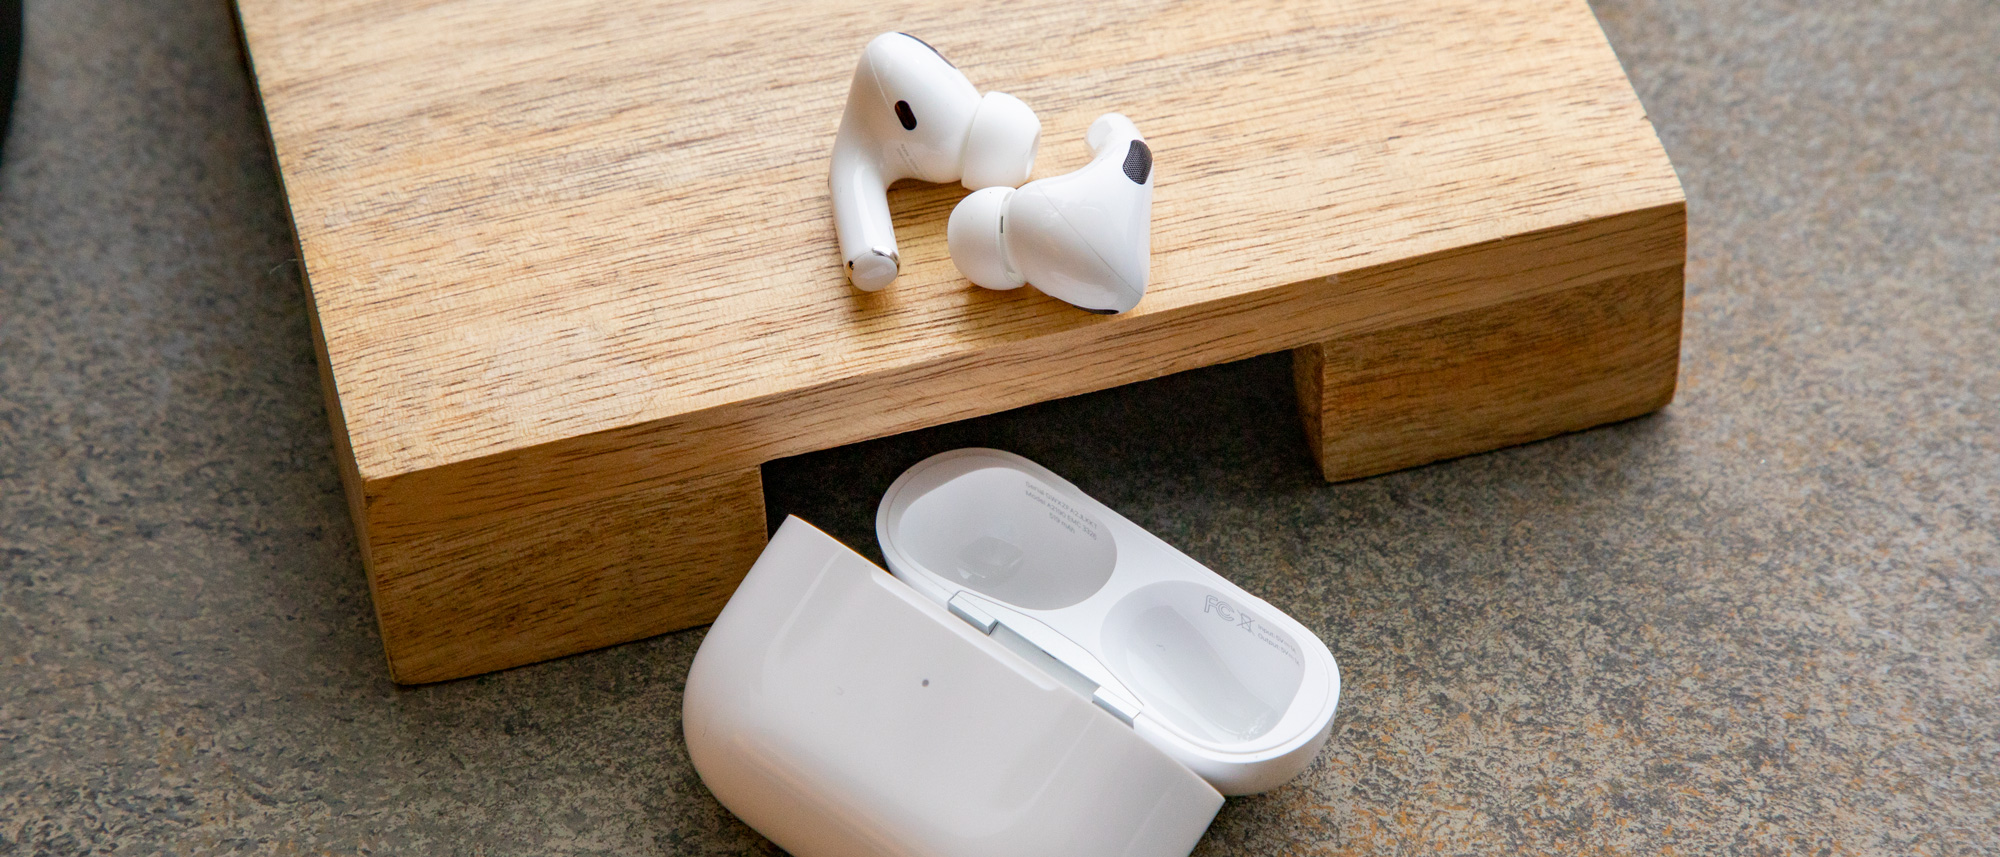 Apple Airpods Pro Review Techradar